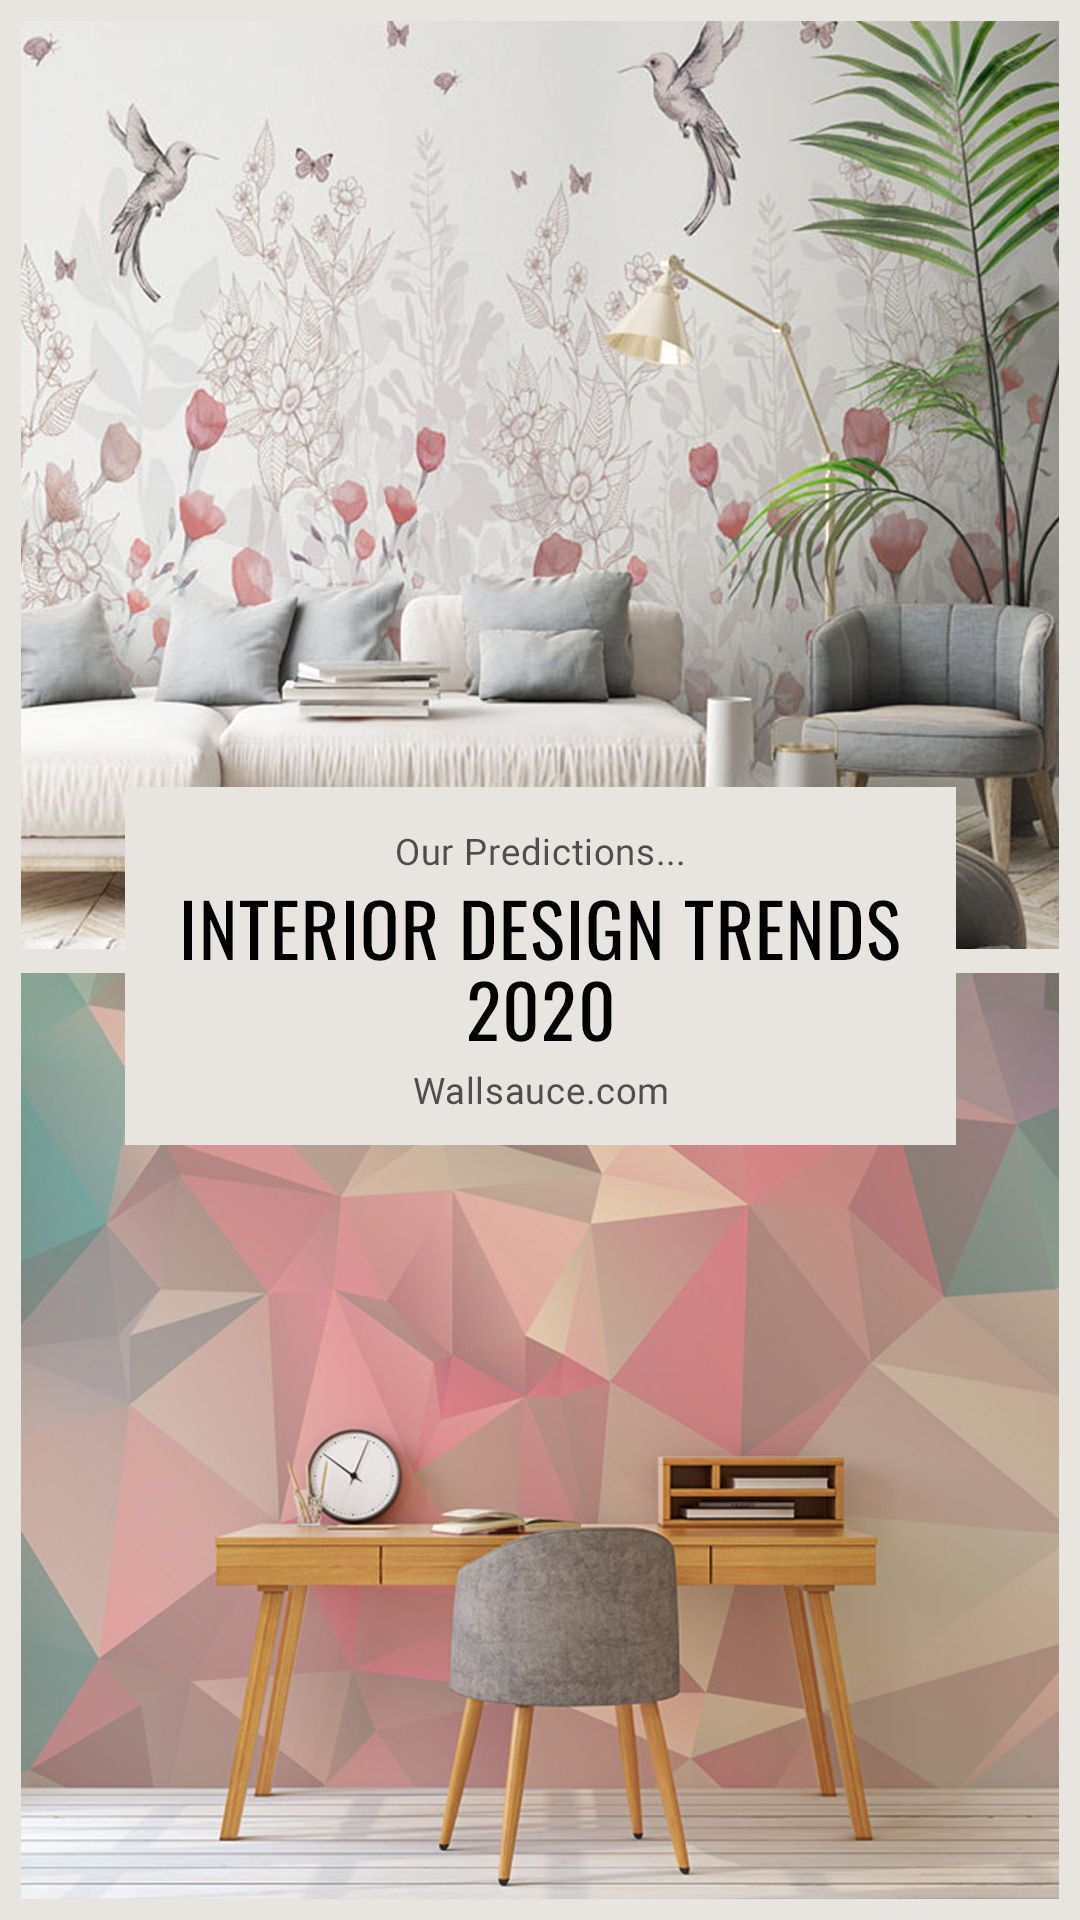 Interior Design Trends 2020 Our Predictions Wallsauce Uk Time To Update Your Decor Interior Design Wall Decor Trends Wallpaper Trends Trending Decor